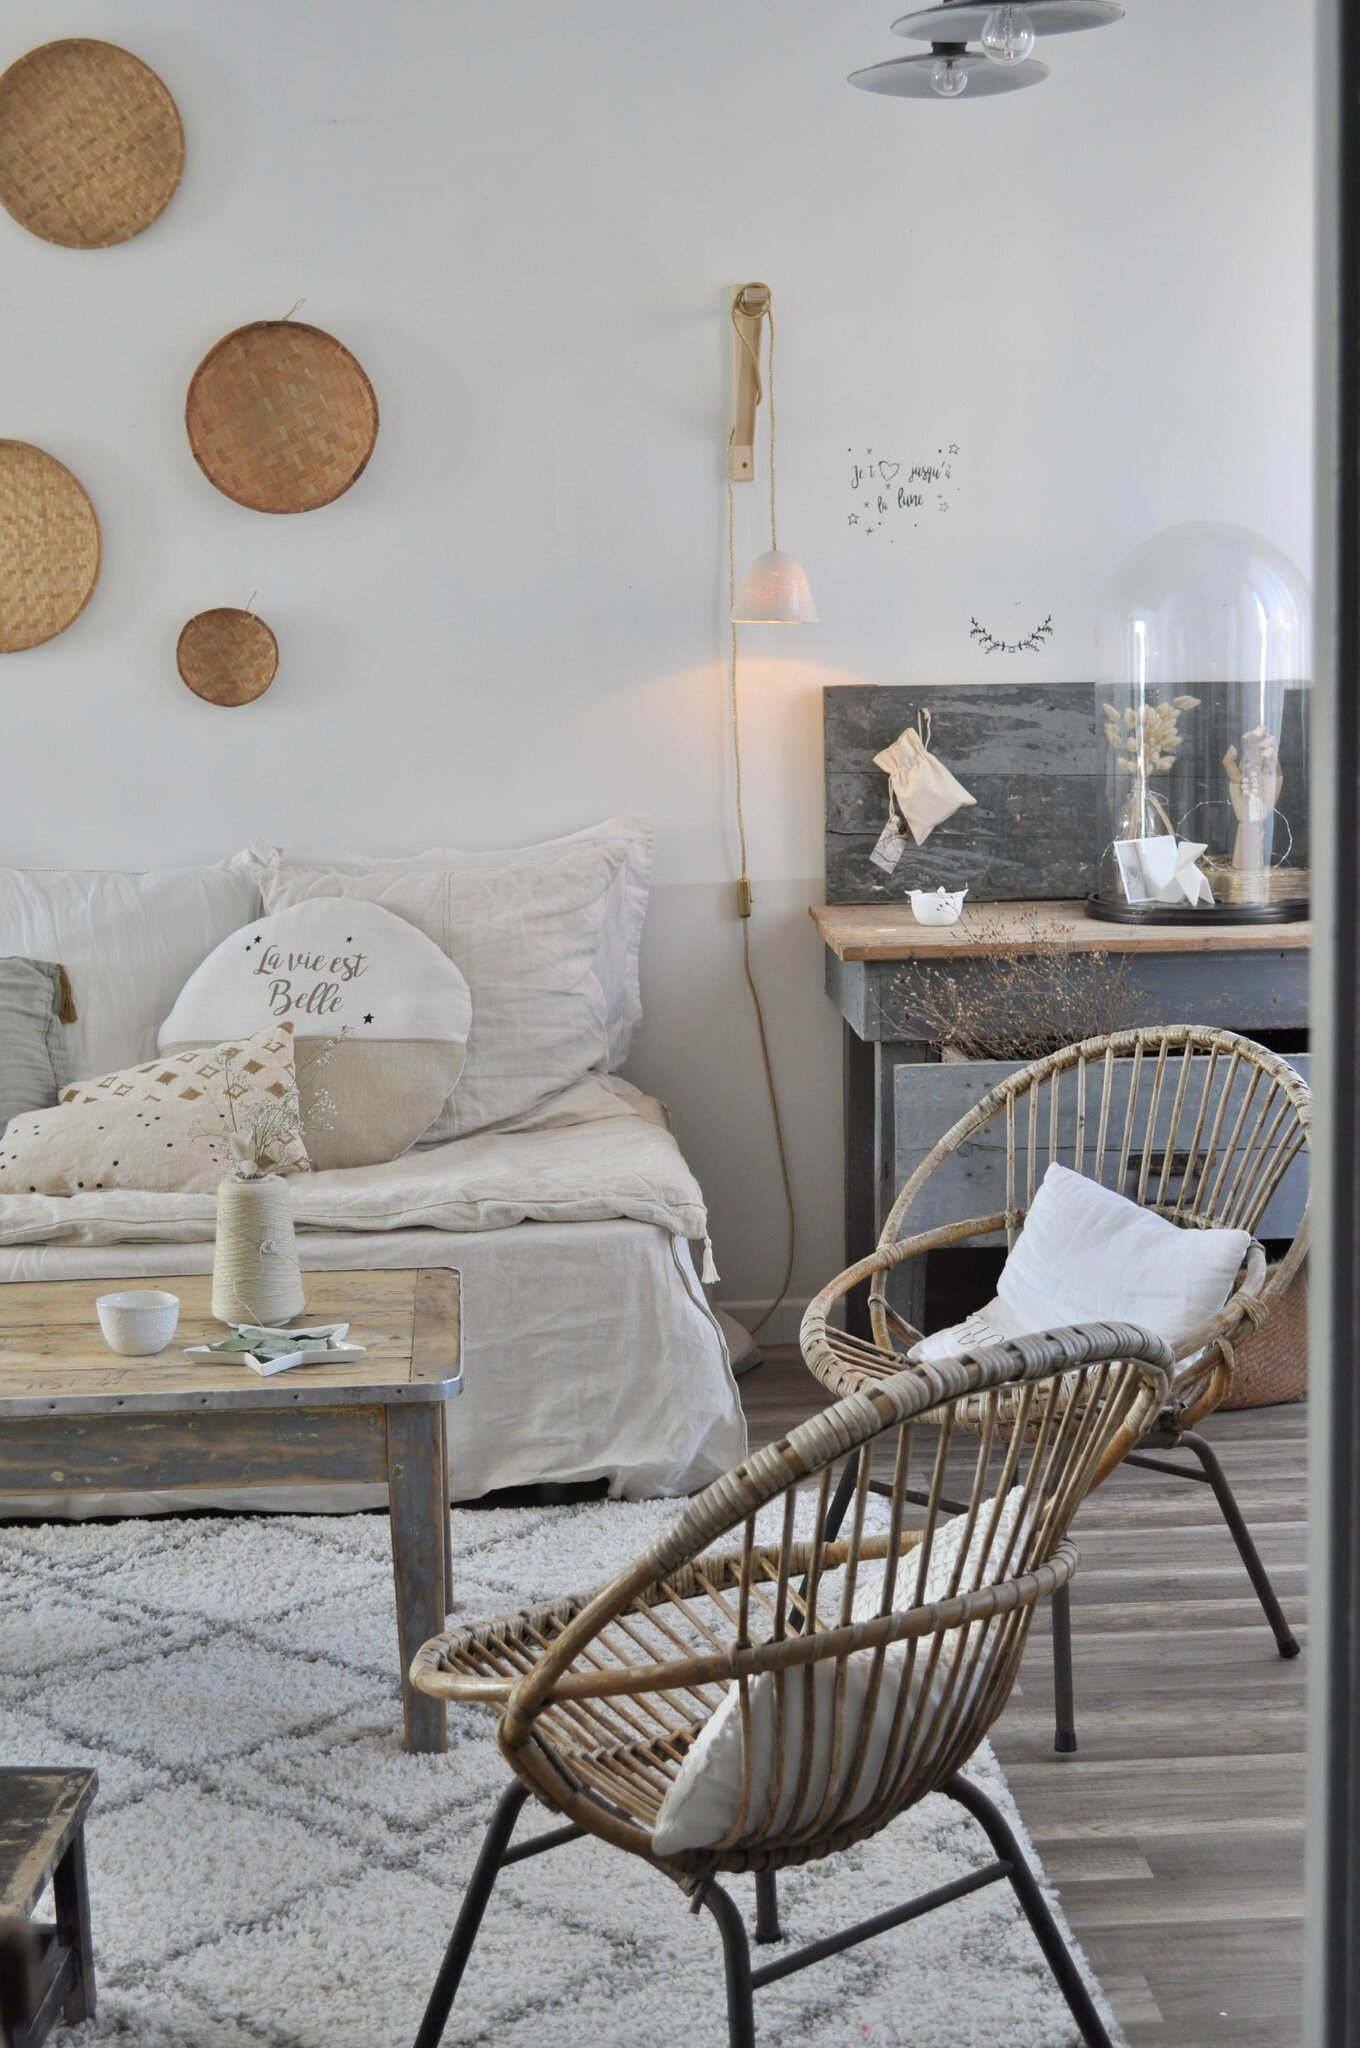 Ma banquette (diy)   p@ge blanche n°11     smile